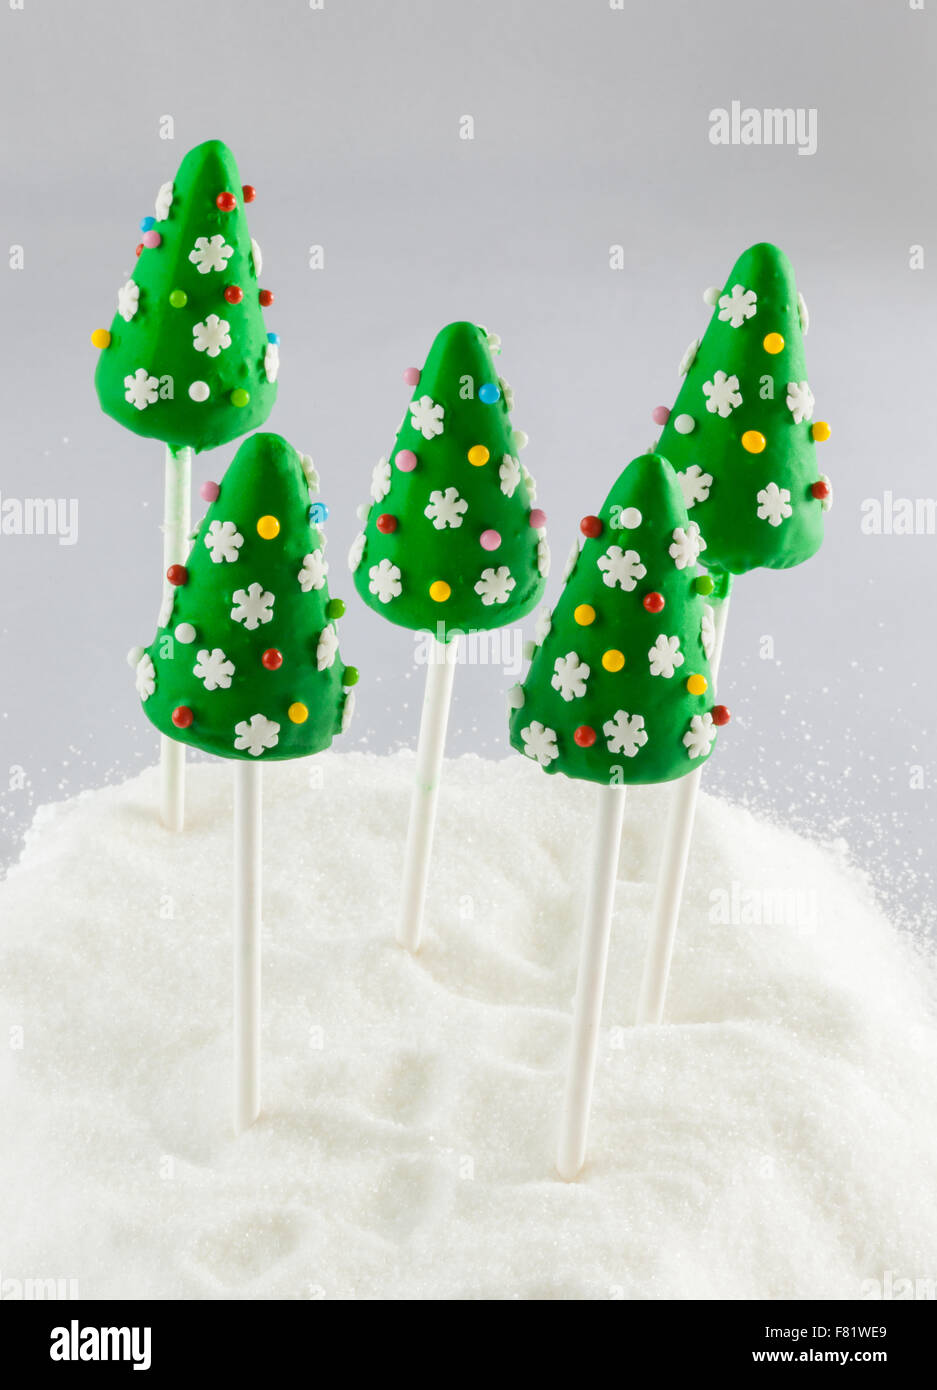 Christmas Tree Sweets Stock Photos & Christmas Tree Sweets Stock ...